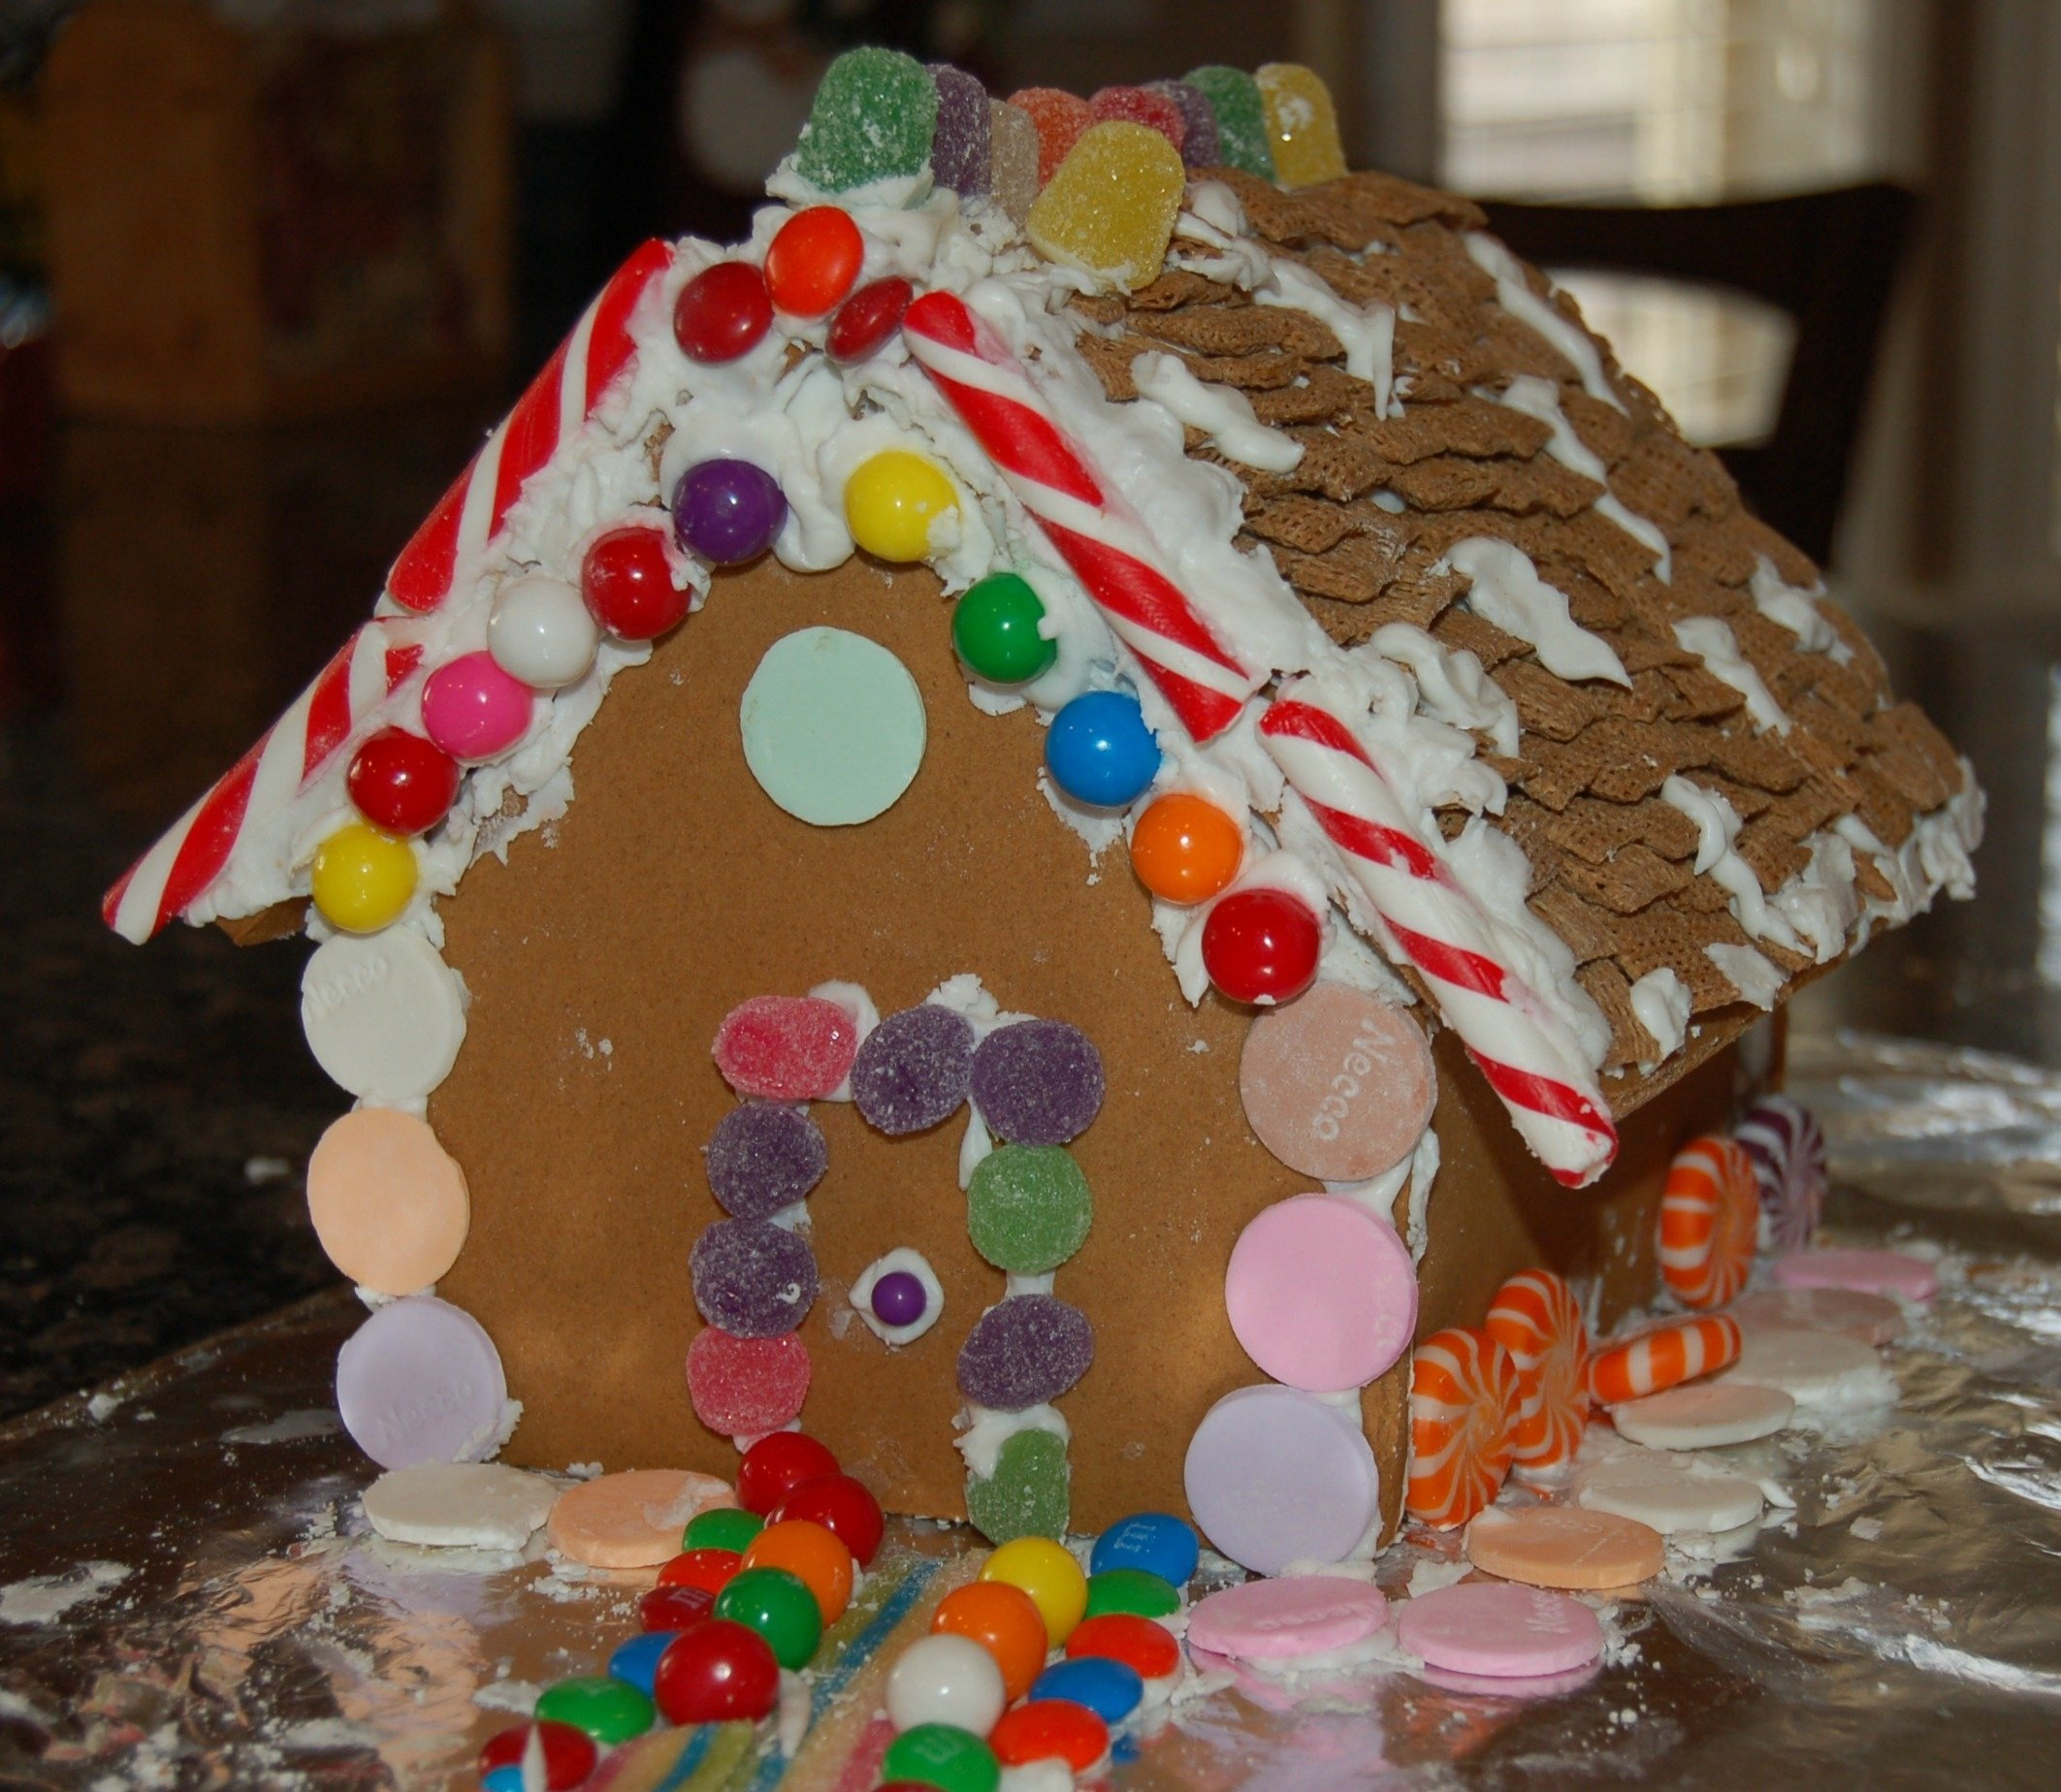 10 Wonderful Gingerbread House Ideas For Kids gingerbread houses ronald mcdonald house charities and the season 2020